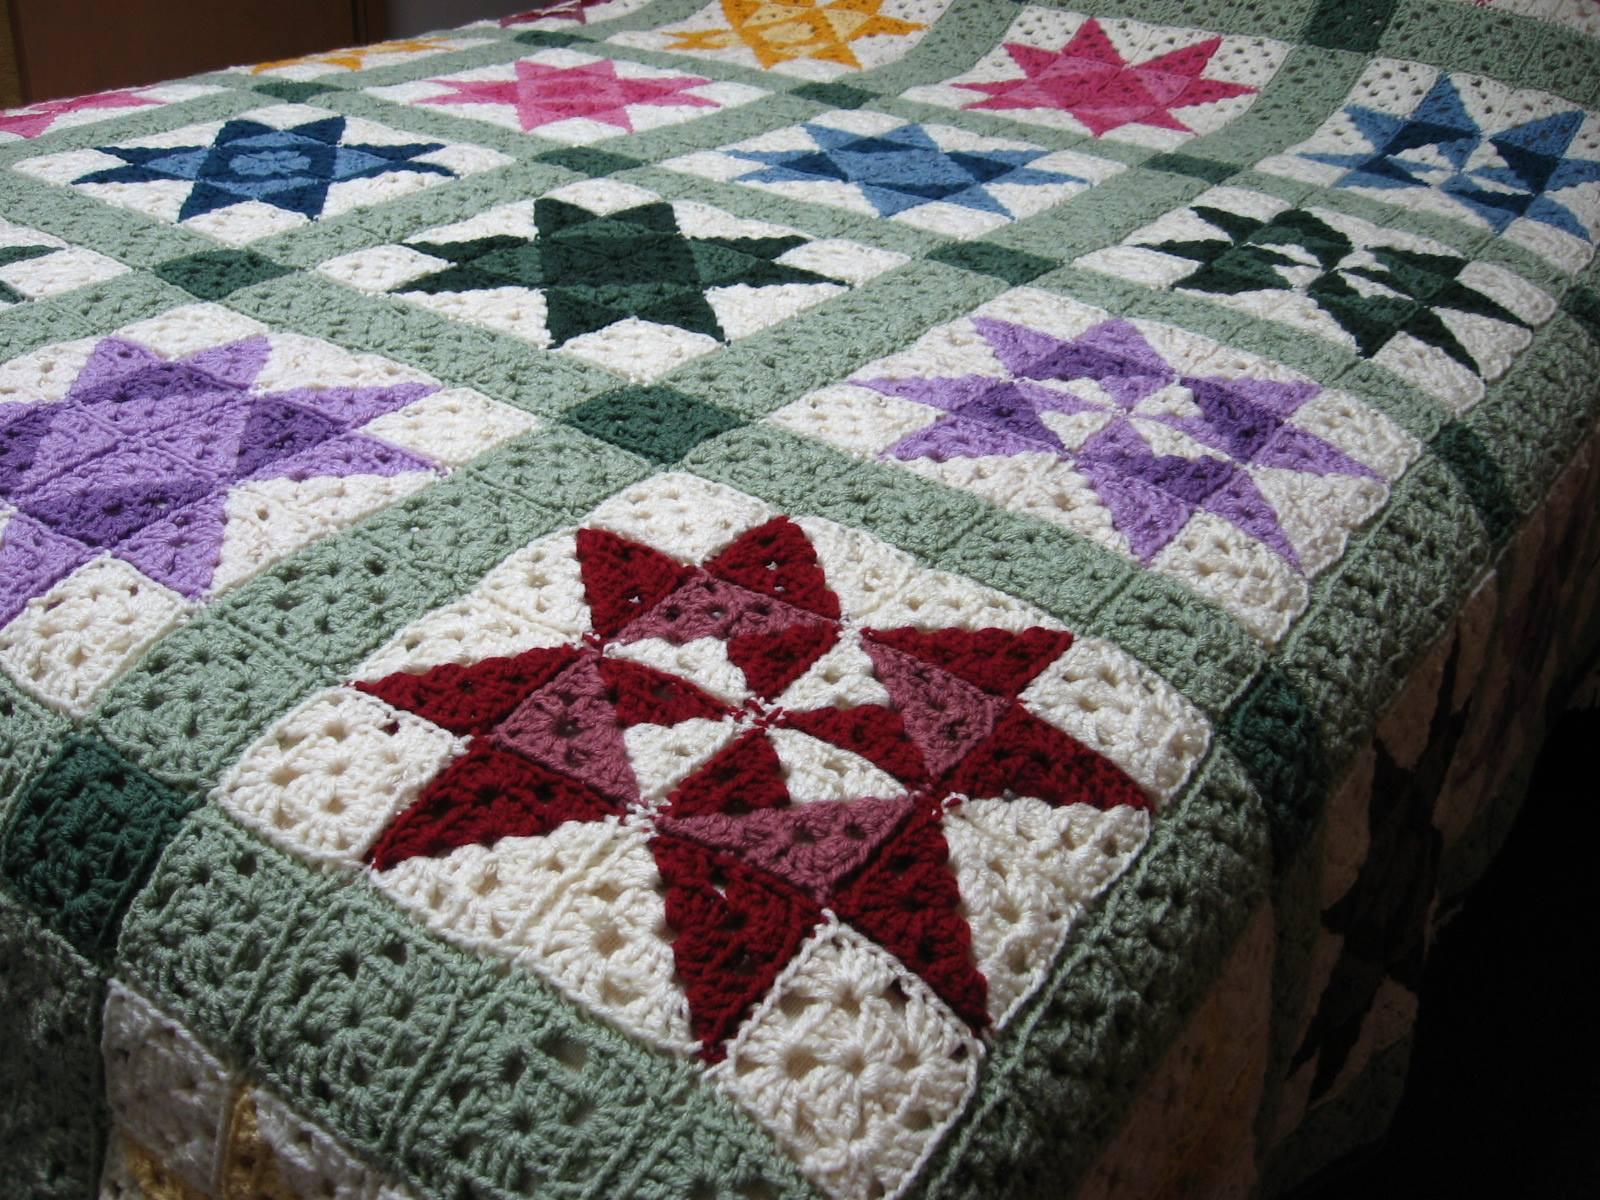 Crochet Afghan Patterns Beautiful Star Motif Granny Square Bedspread ⋆ Crochet Kingdom Of Crochet Afghan Patterns Best Of Pdf Pattern Crocheted Baby Afghan Car Seat Size and